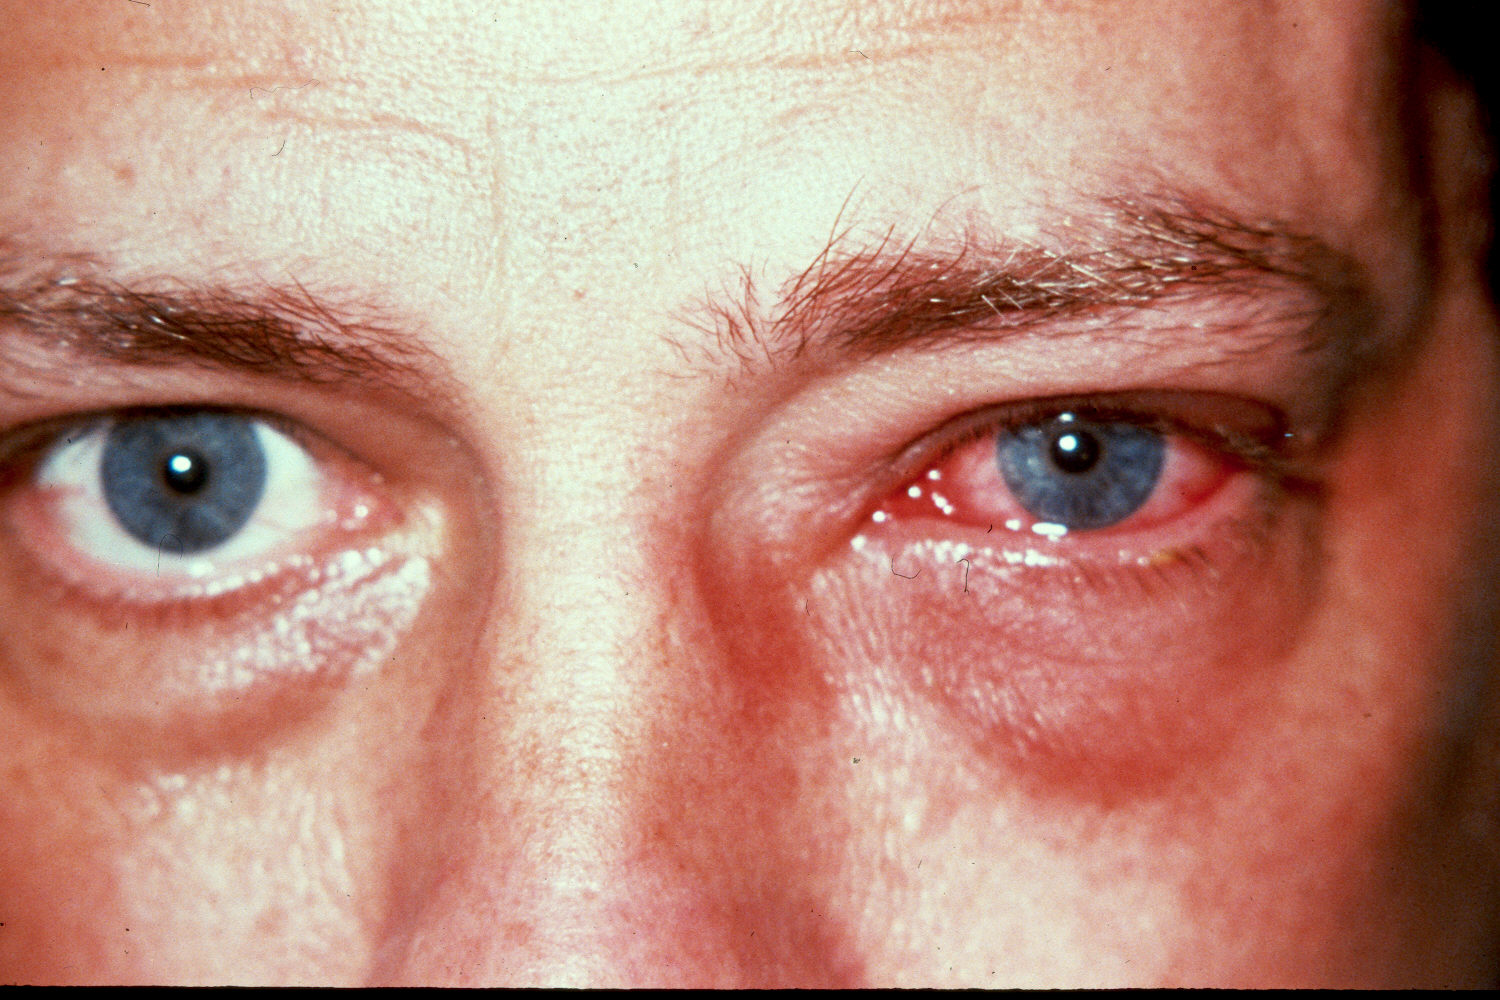 Pictures of Ocular Diseases and Problems – Bacterial ...